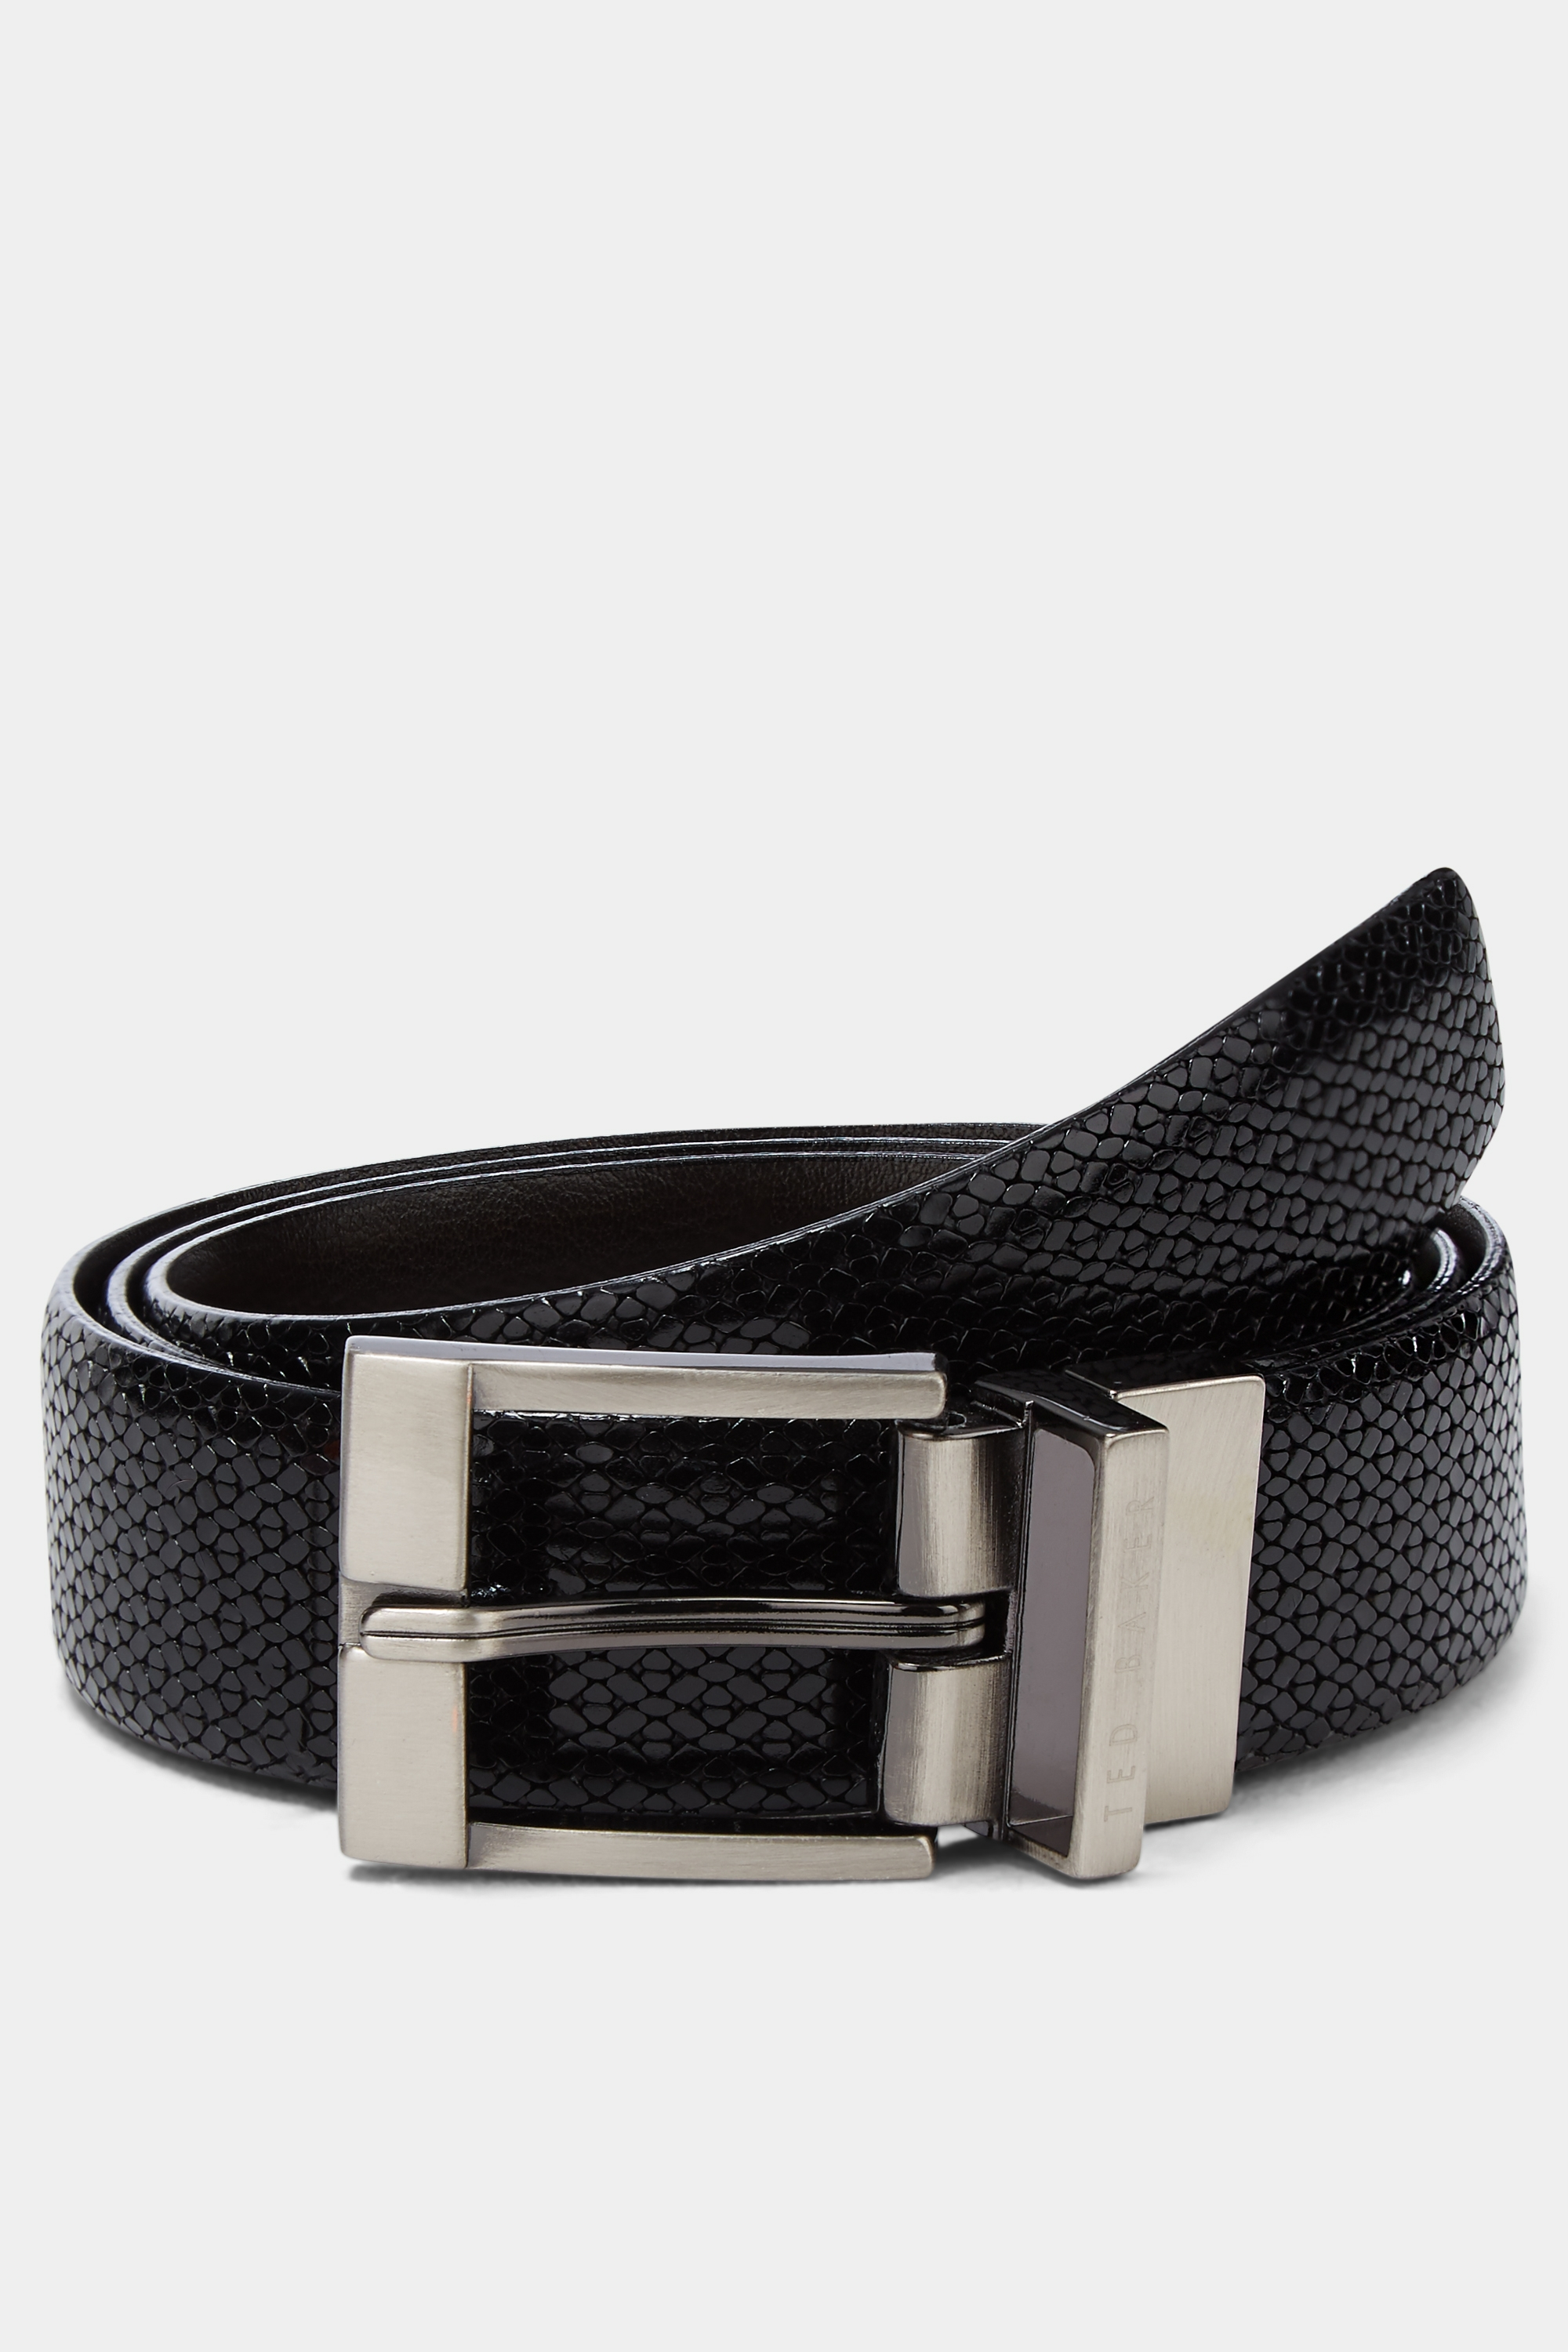 Ted Baker Black Inka Woven Reversible Leather Belt